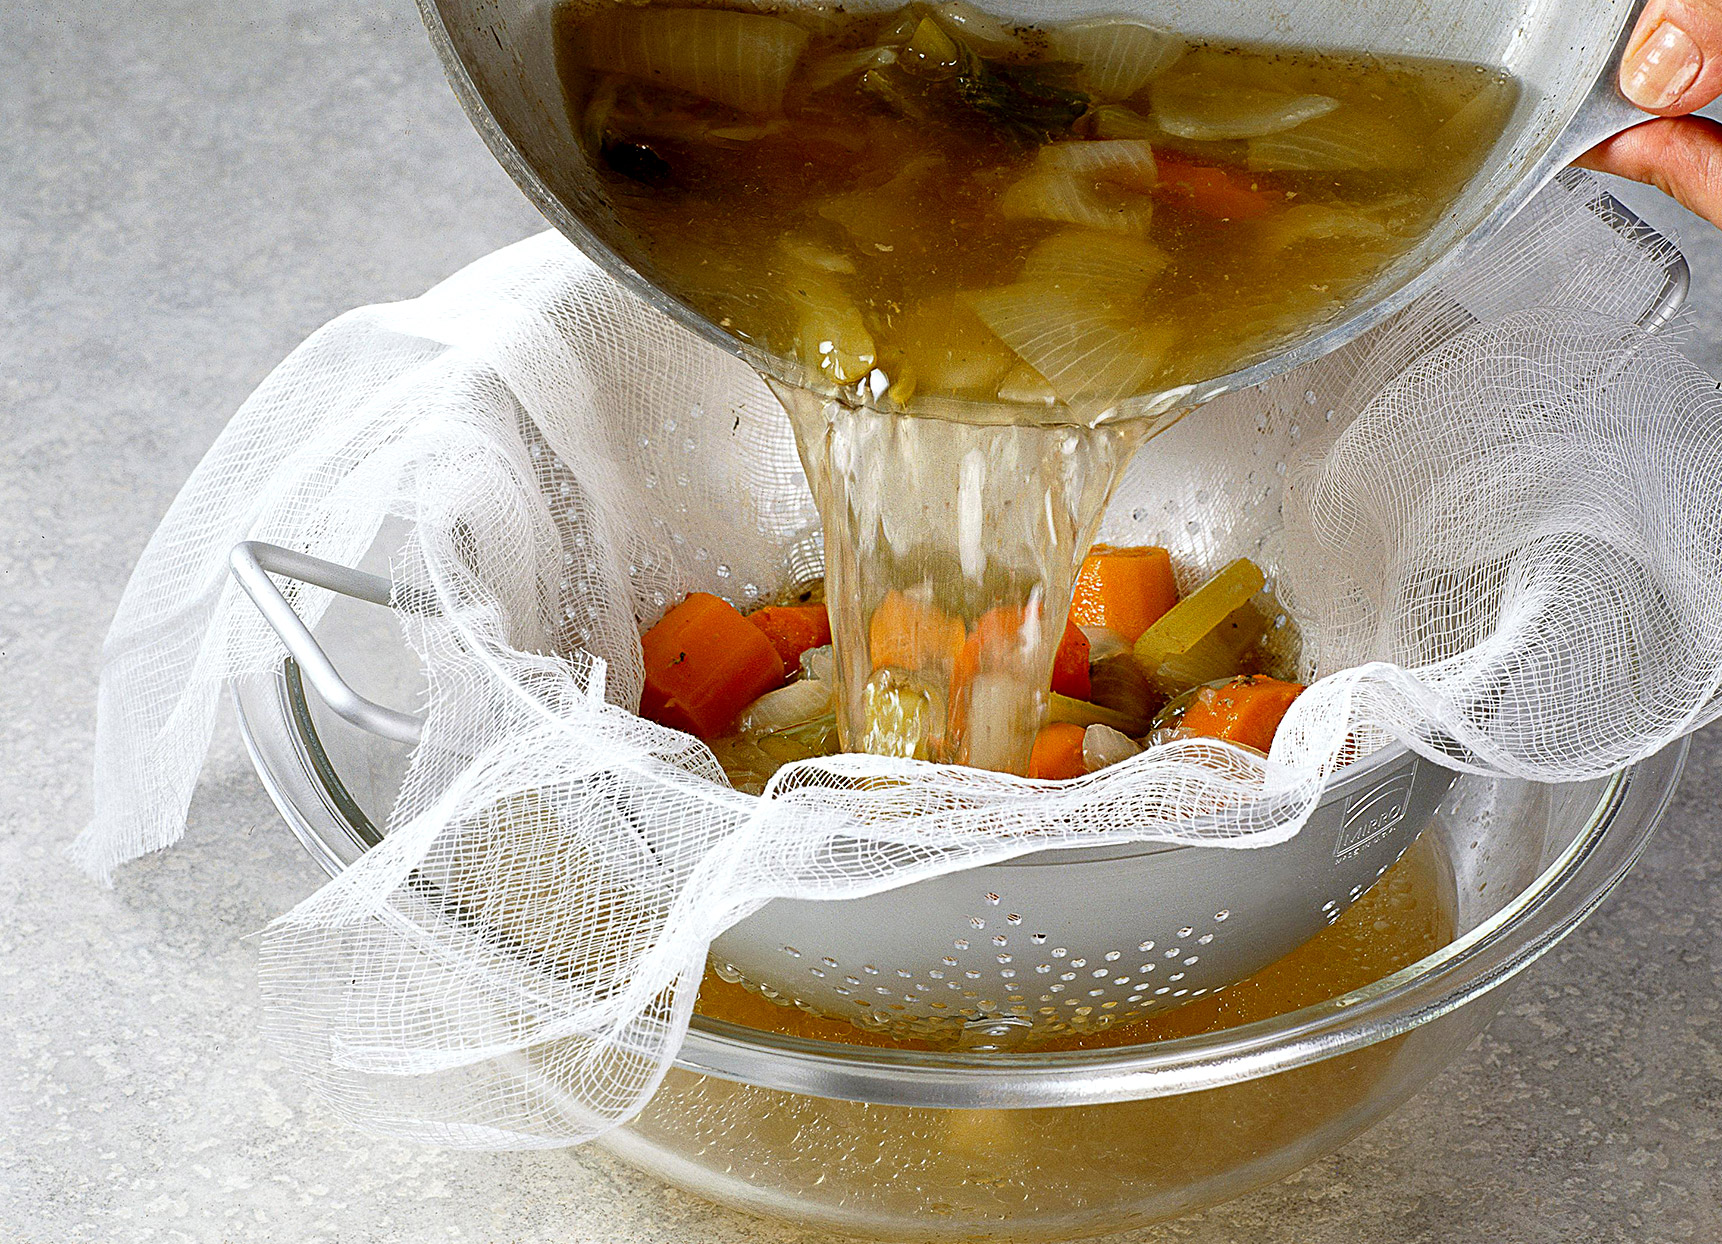 Straining broth through cheesecloth in colander